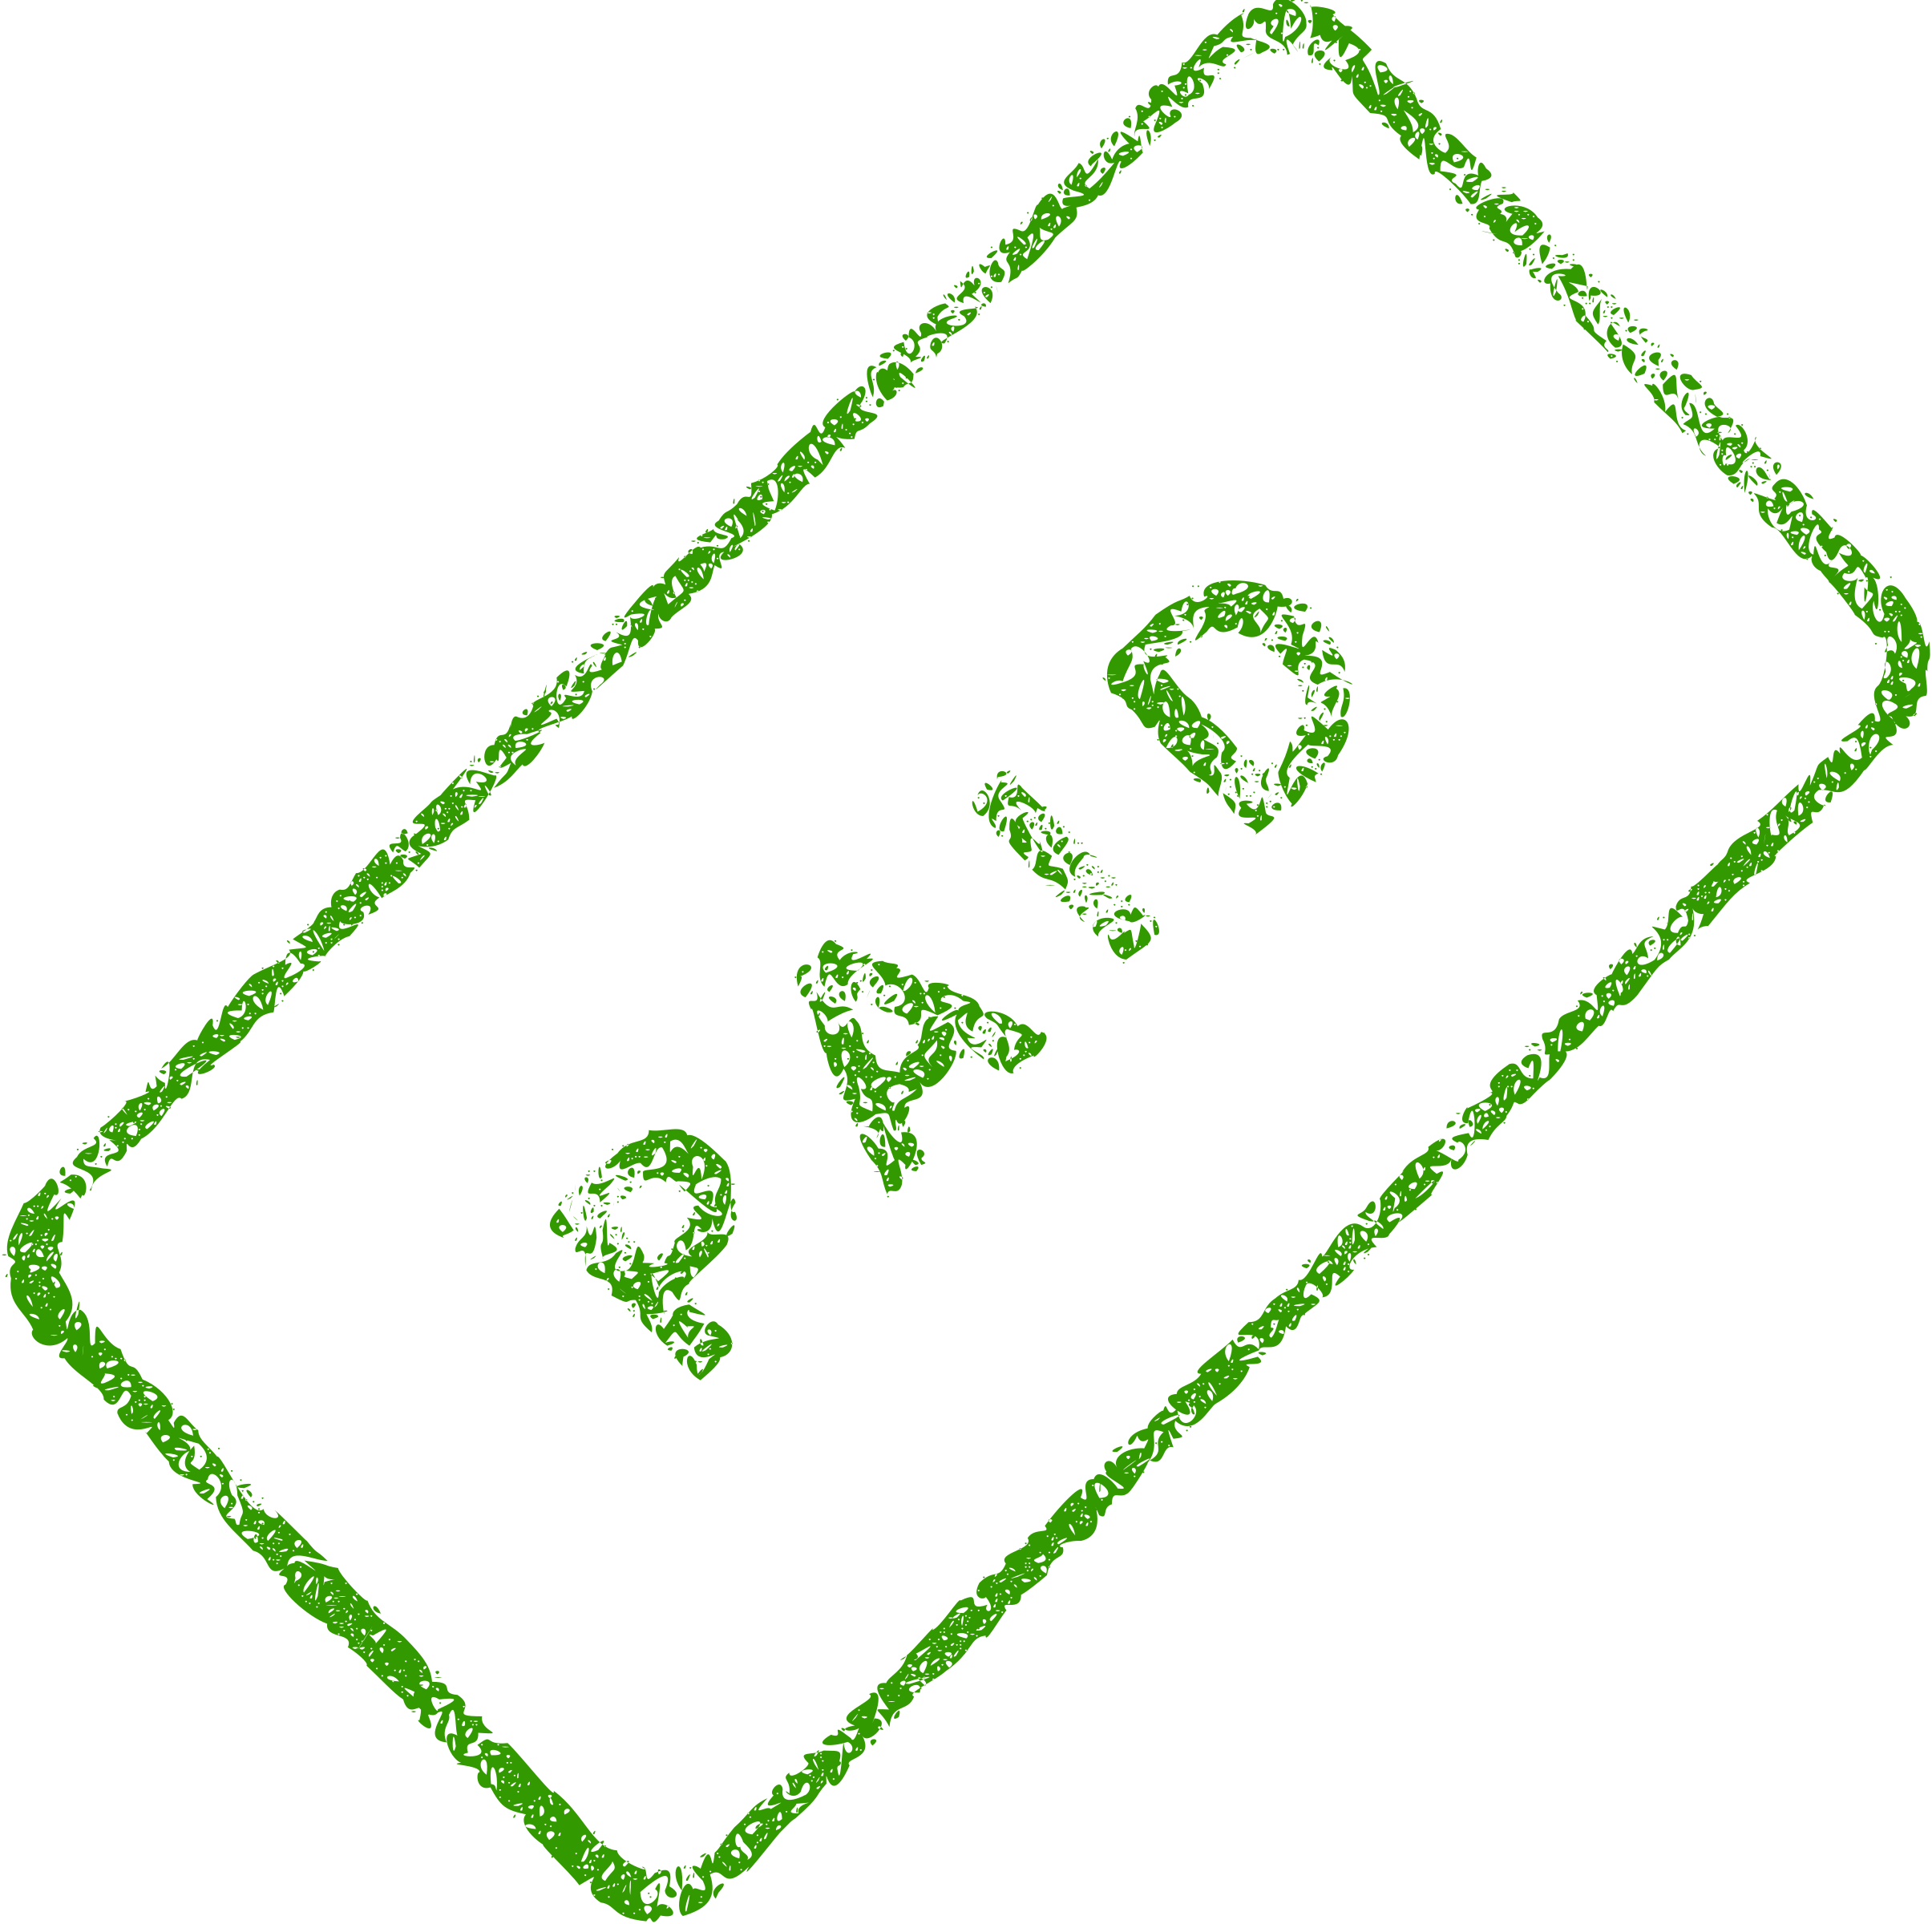 ... Clipart - Paid Business Stamp 2 ...-... Clipart - Paid Business Stamp 2 ...-3